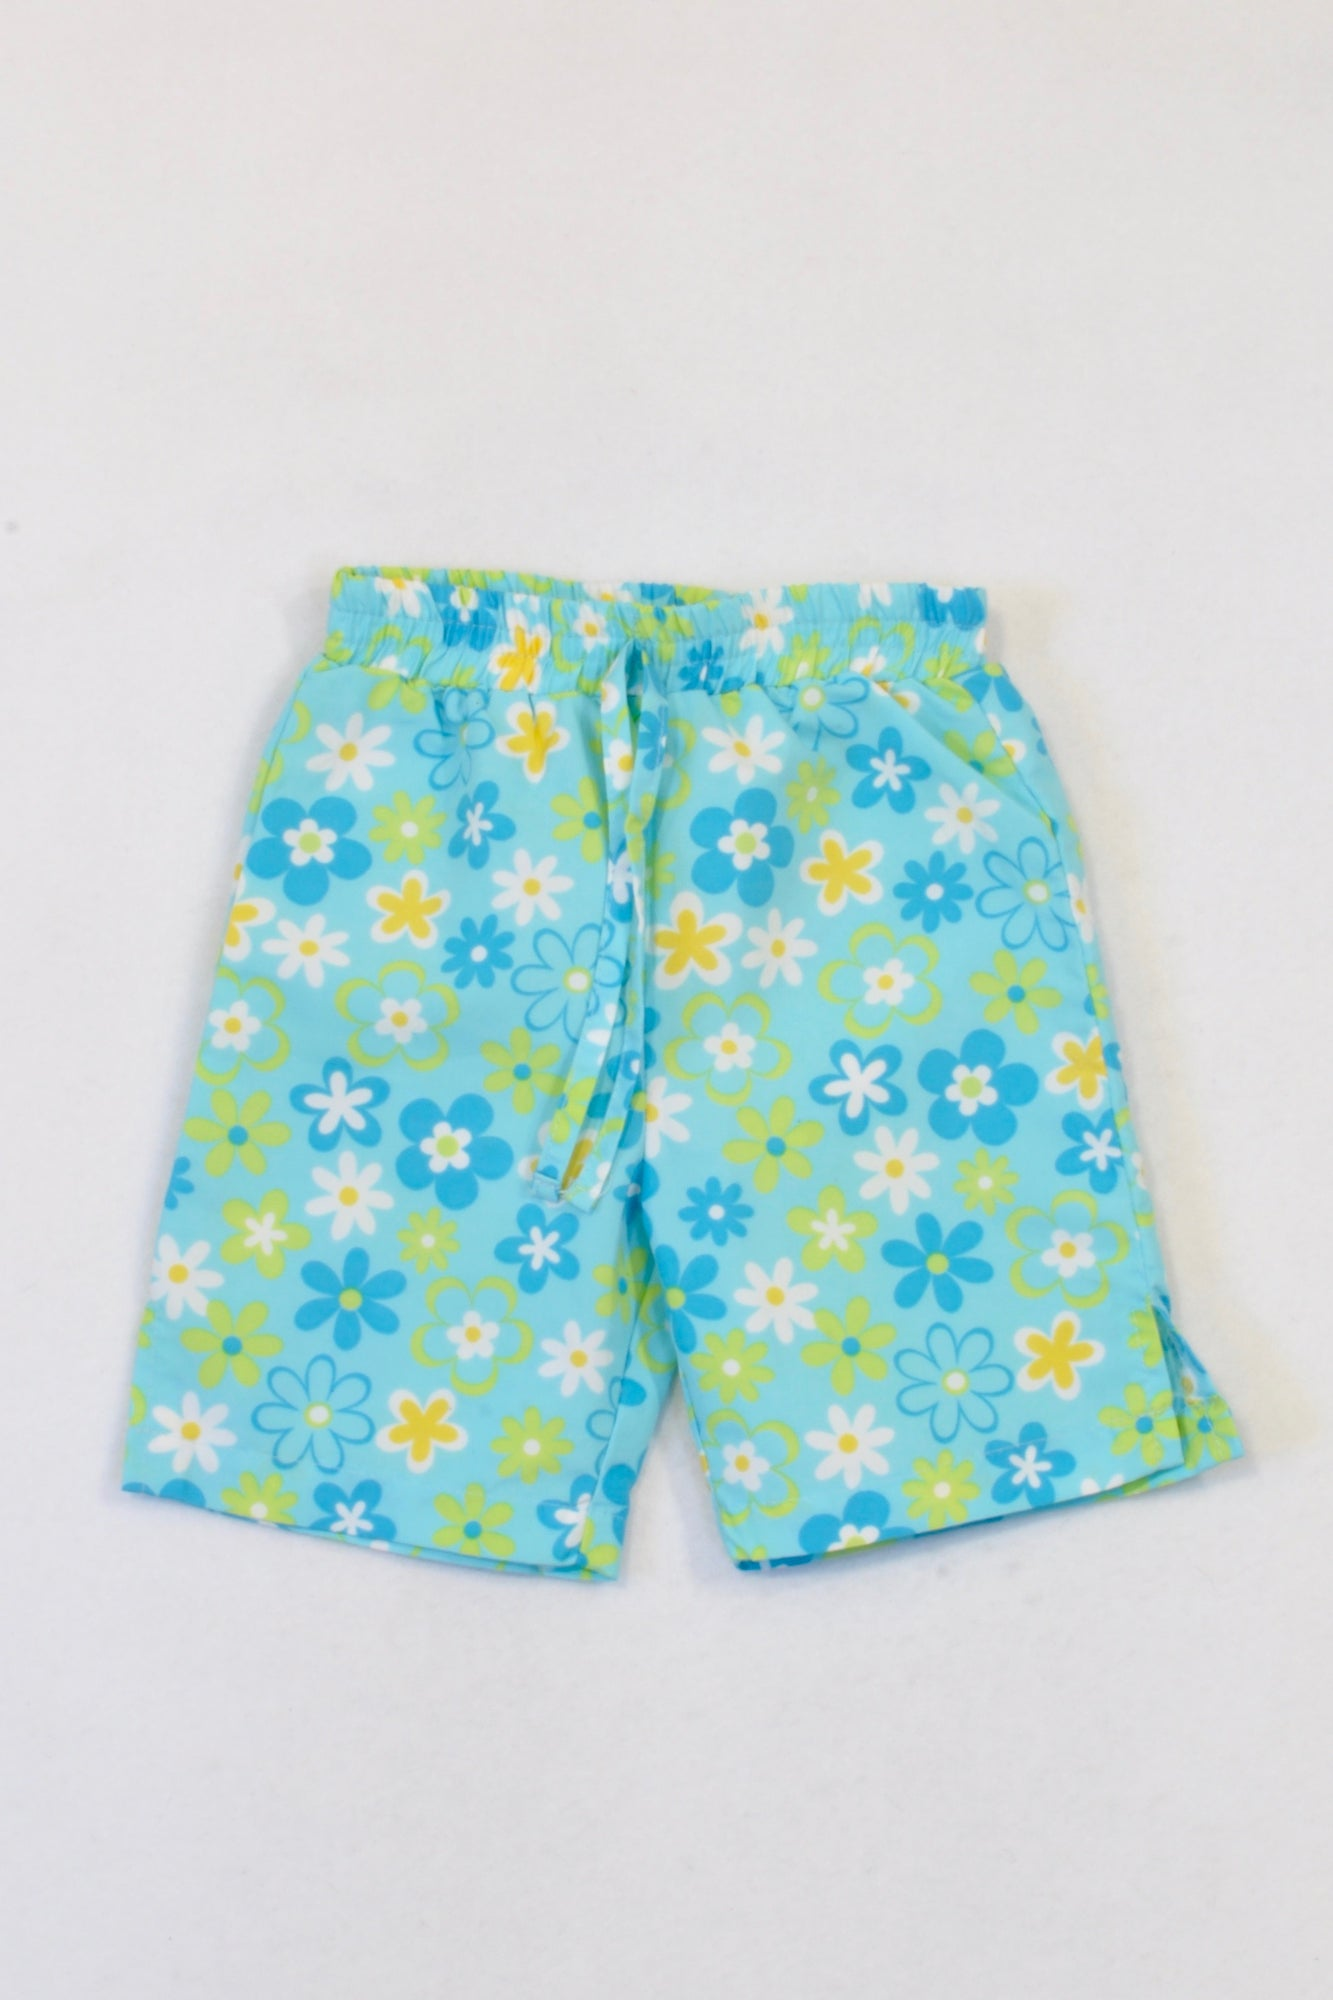 Ackermans Blue Tropical Swim Shorts Girls 3-6 months